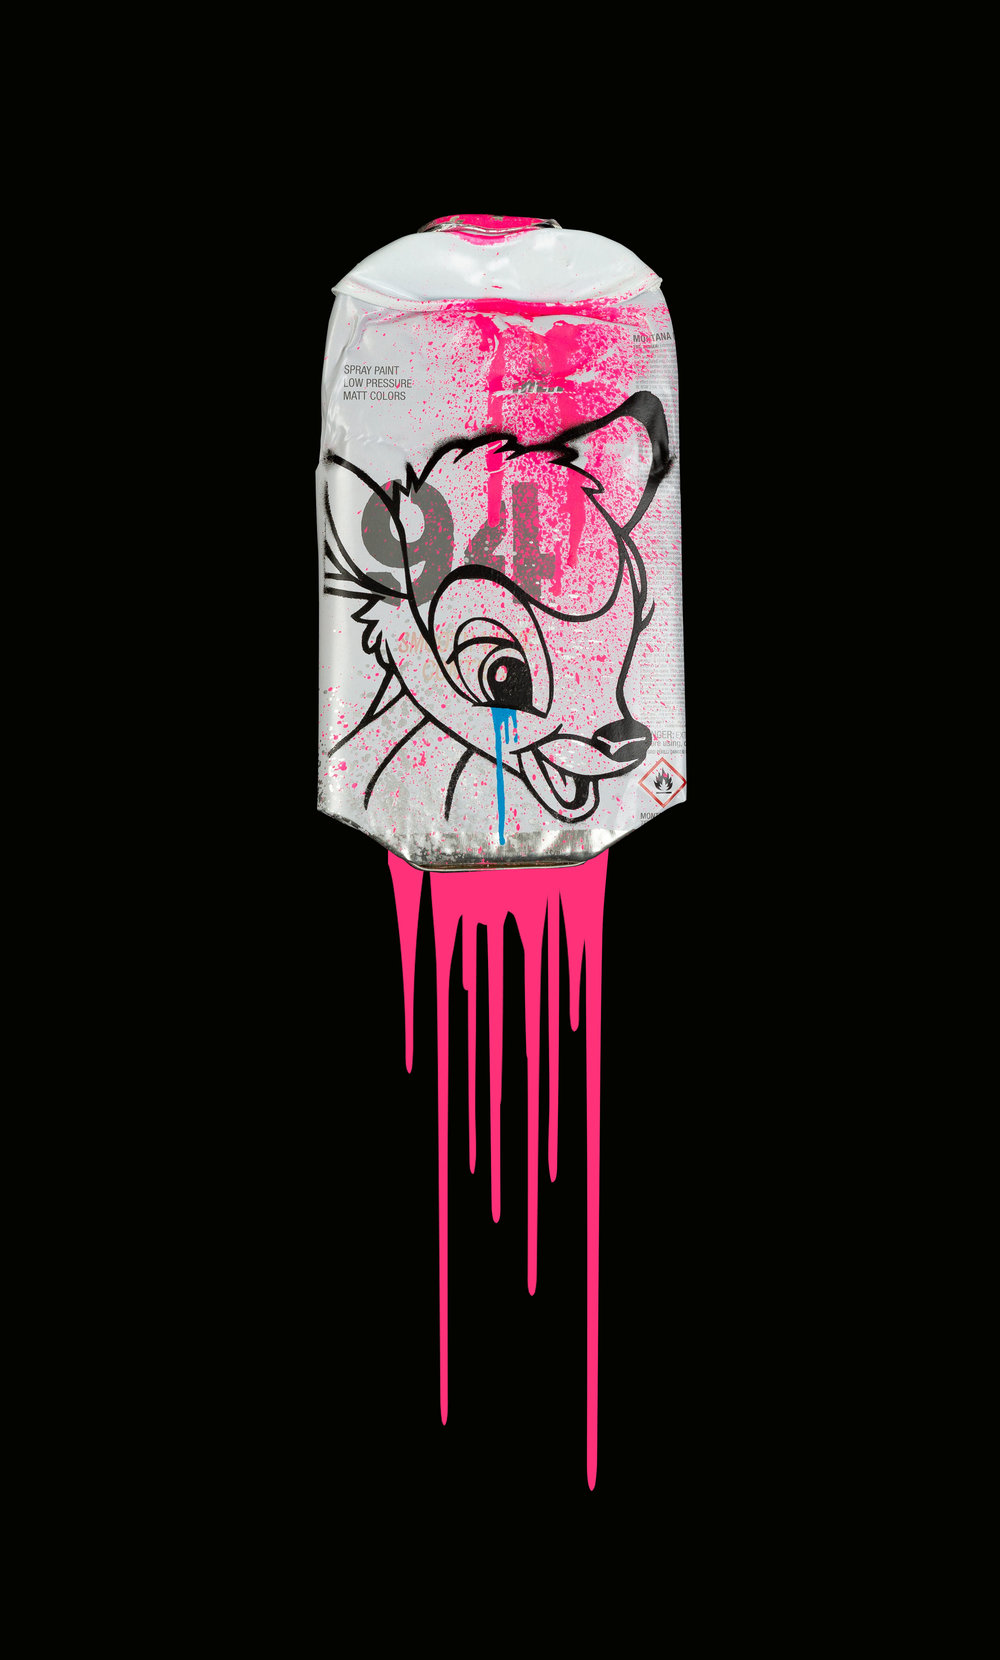 Bambi-Montana-94-Neon-Pink-Acrylic-Spray-paint-on-crushed-spray-can-in-museum-perspex-box-frame-27.5cm-x-45cm-x-5.5cm-£725.jpg